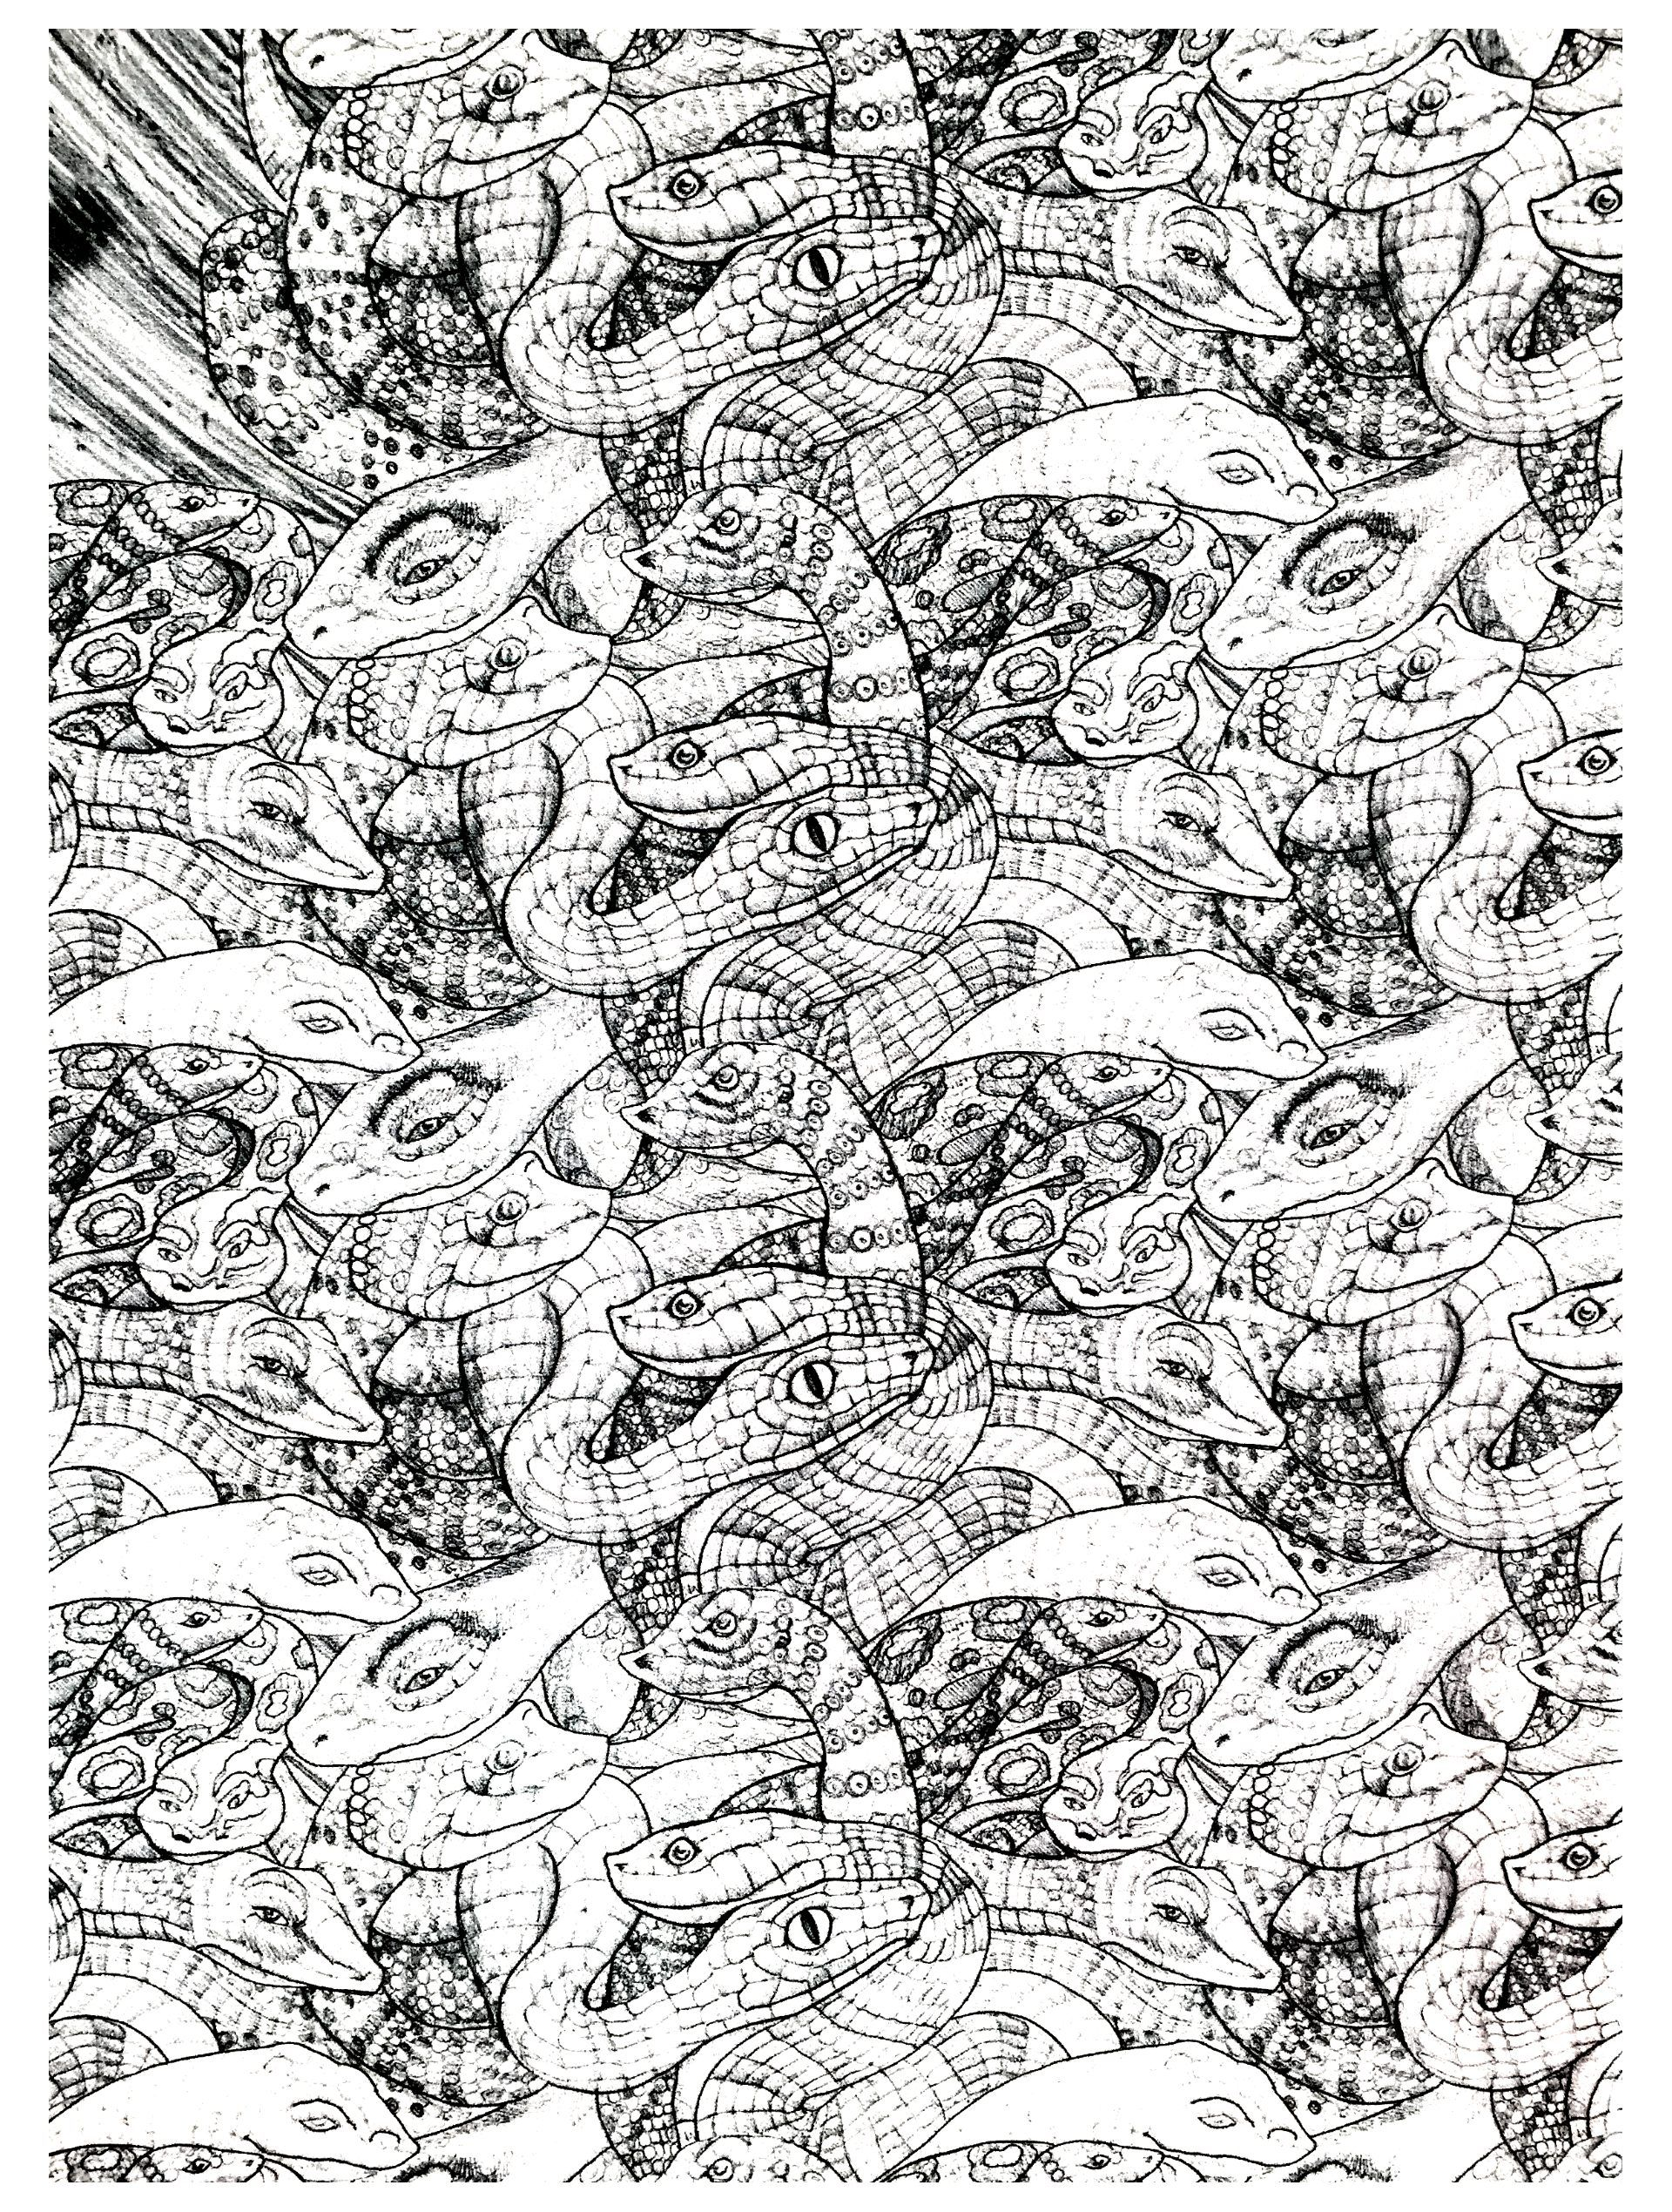 free coloring page coloring adults snakes complex 2 very - Coloring Pages Of Snakes 2